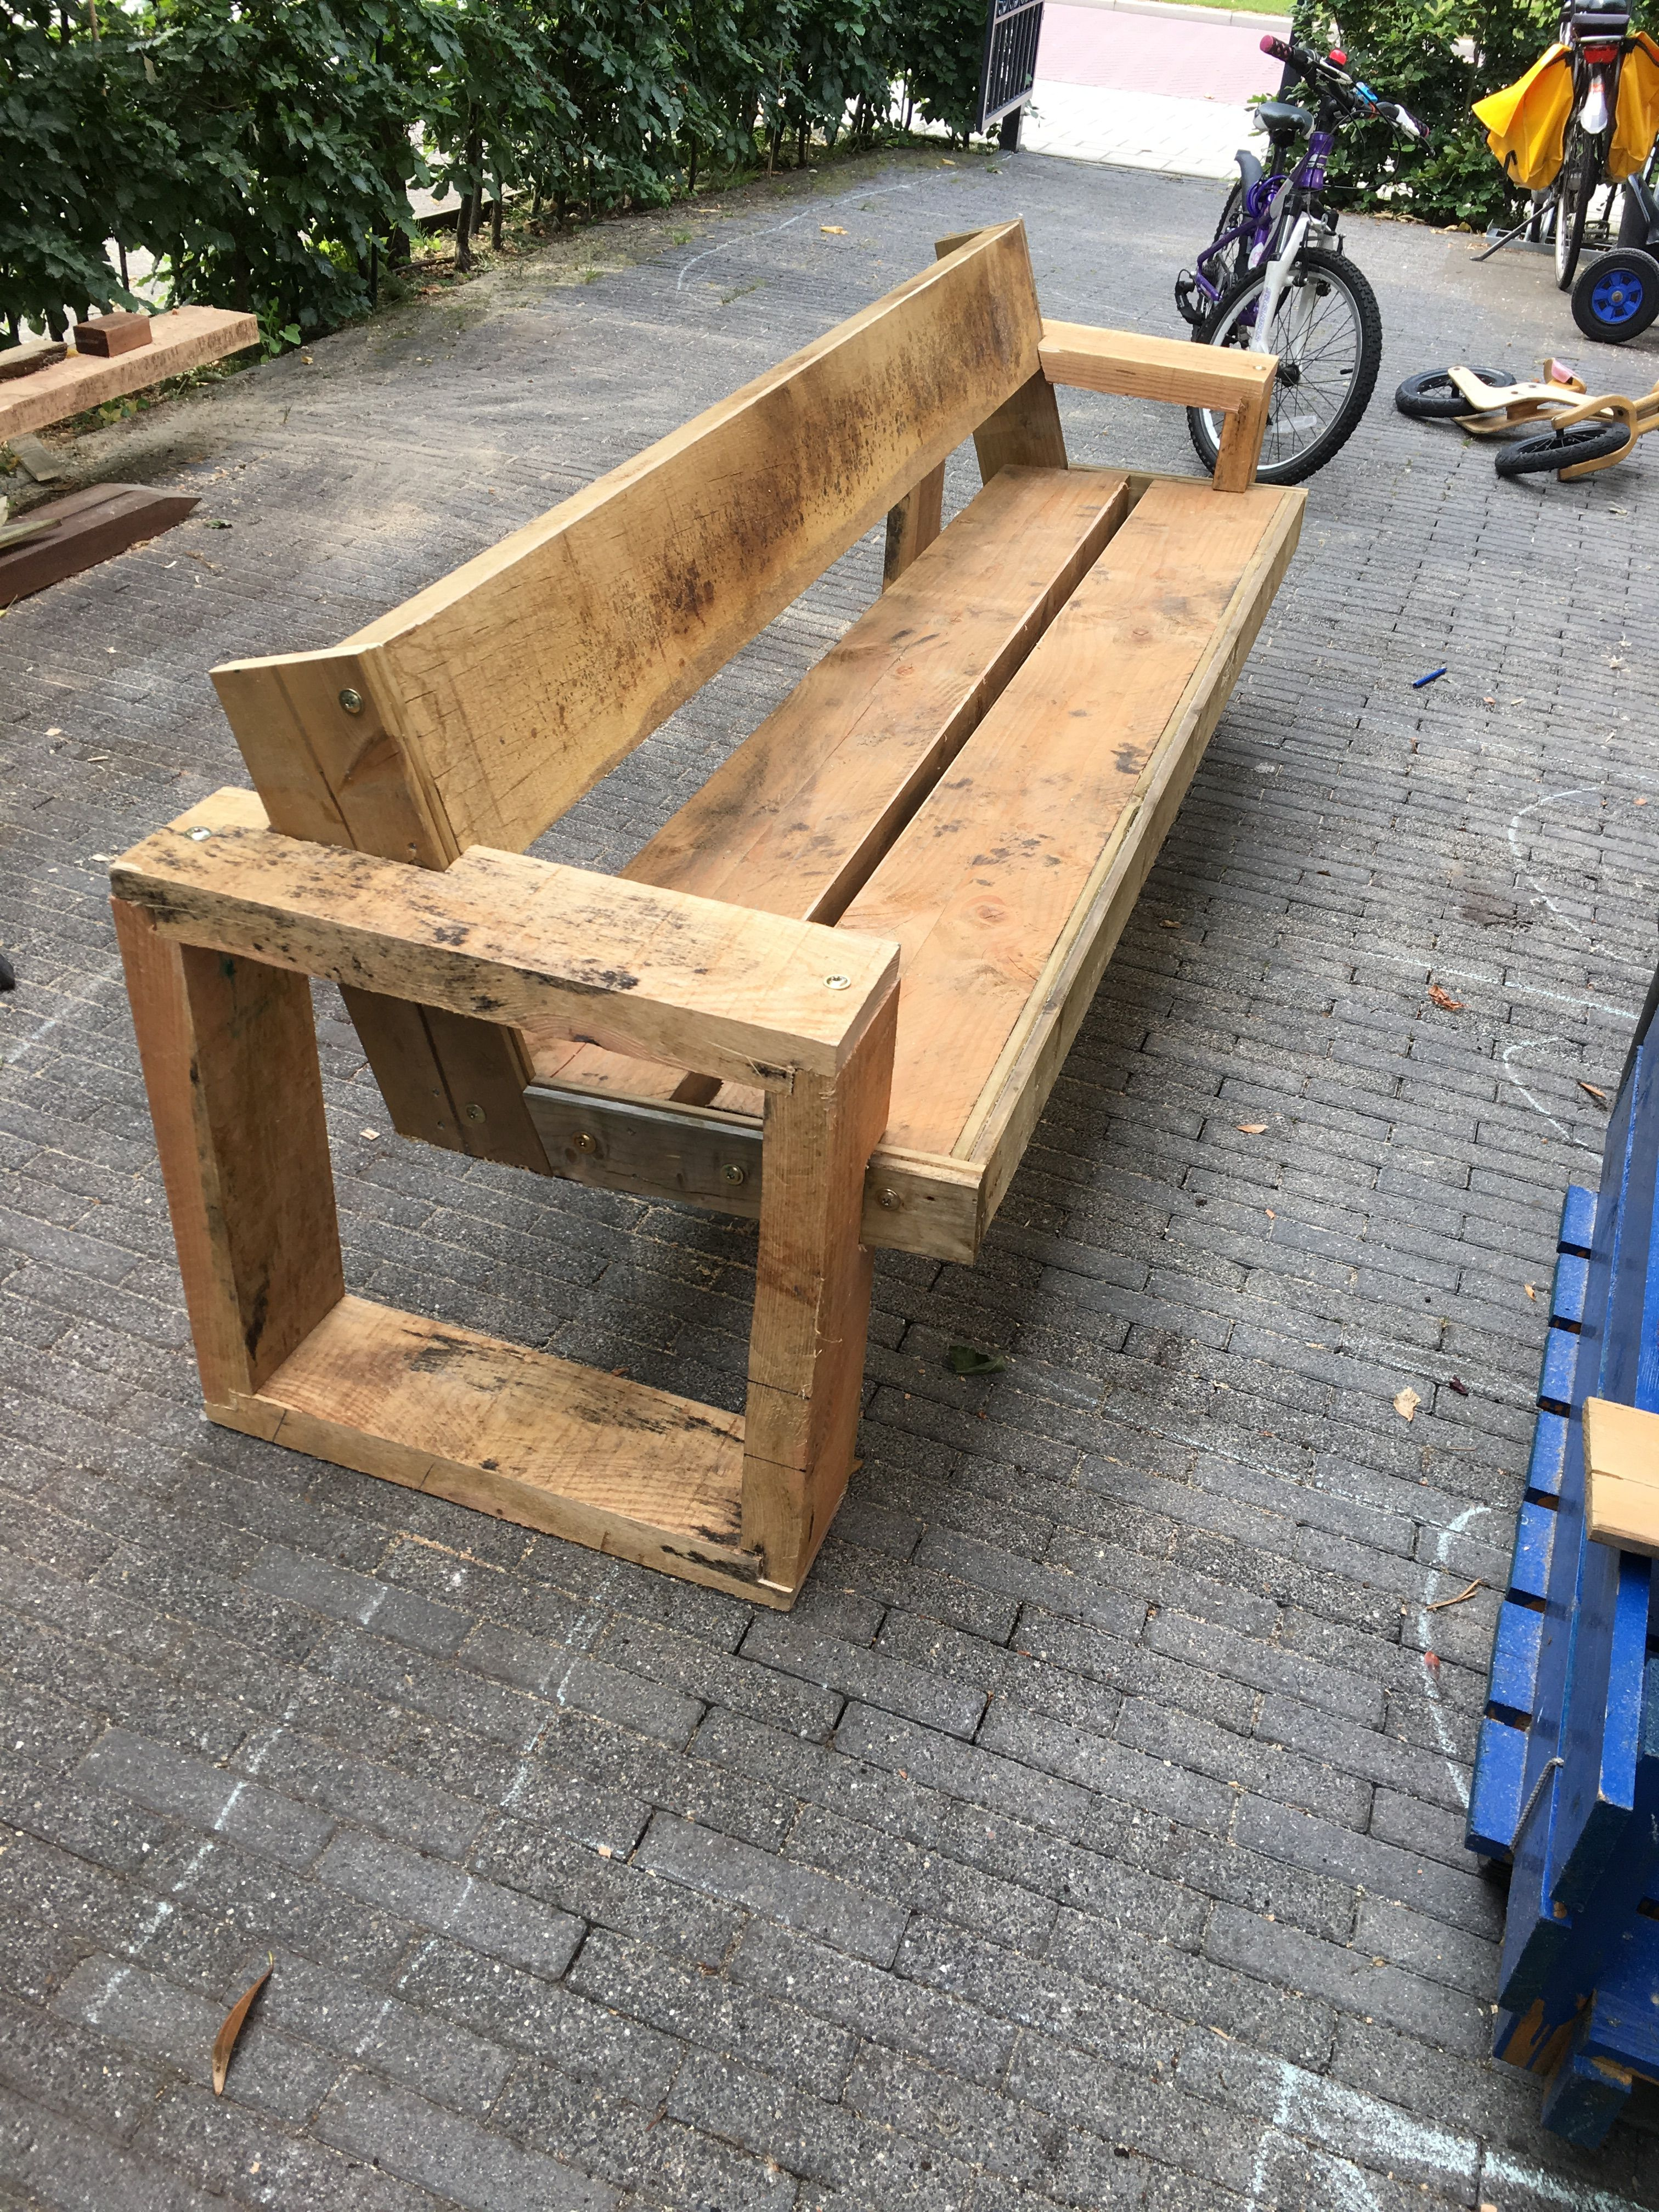 Douglas Oak And Other Spare Woods Made A Perfect Outdoor Bench Couch Wood Bench Outdoor Wood Furniture Diy Outdoor Furniture Plans